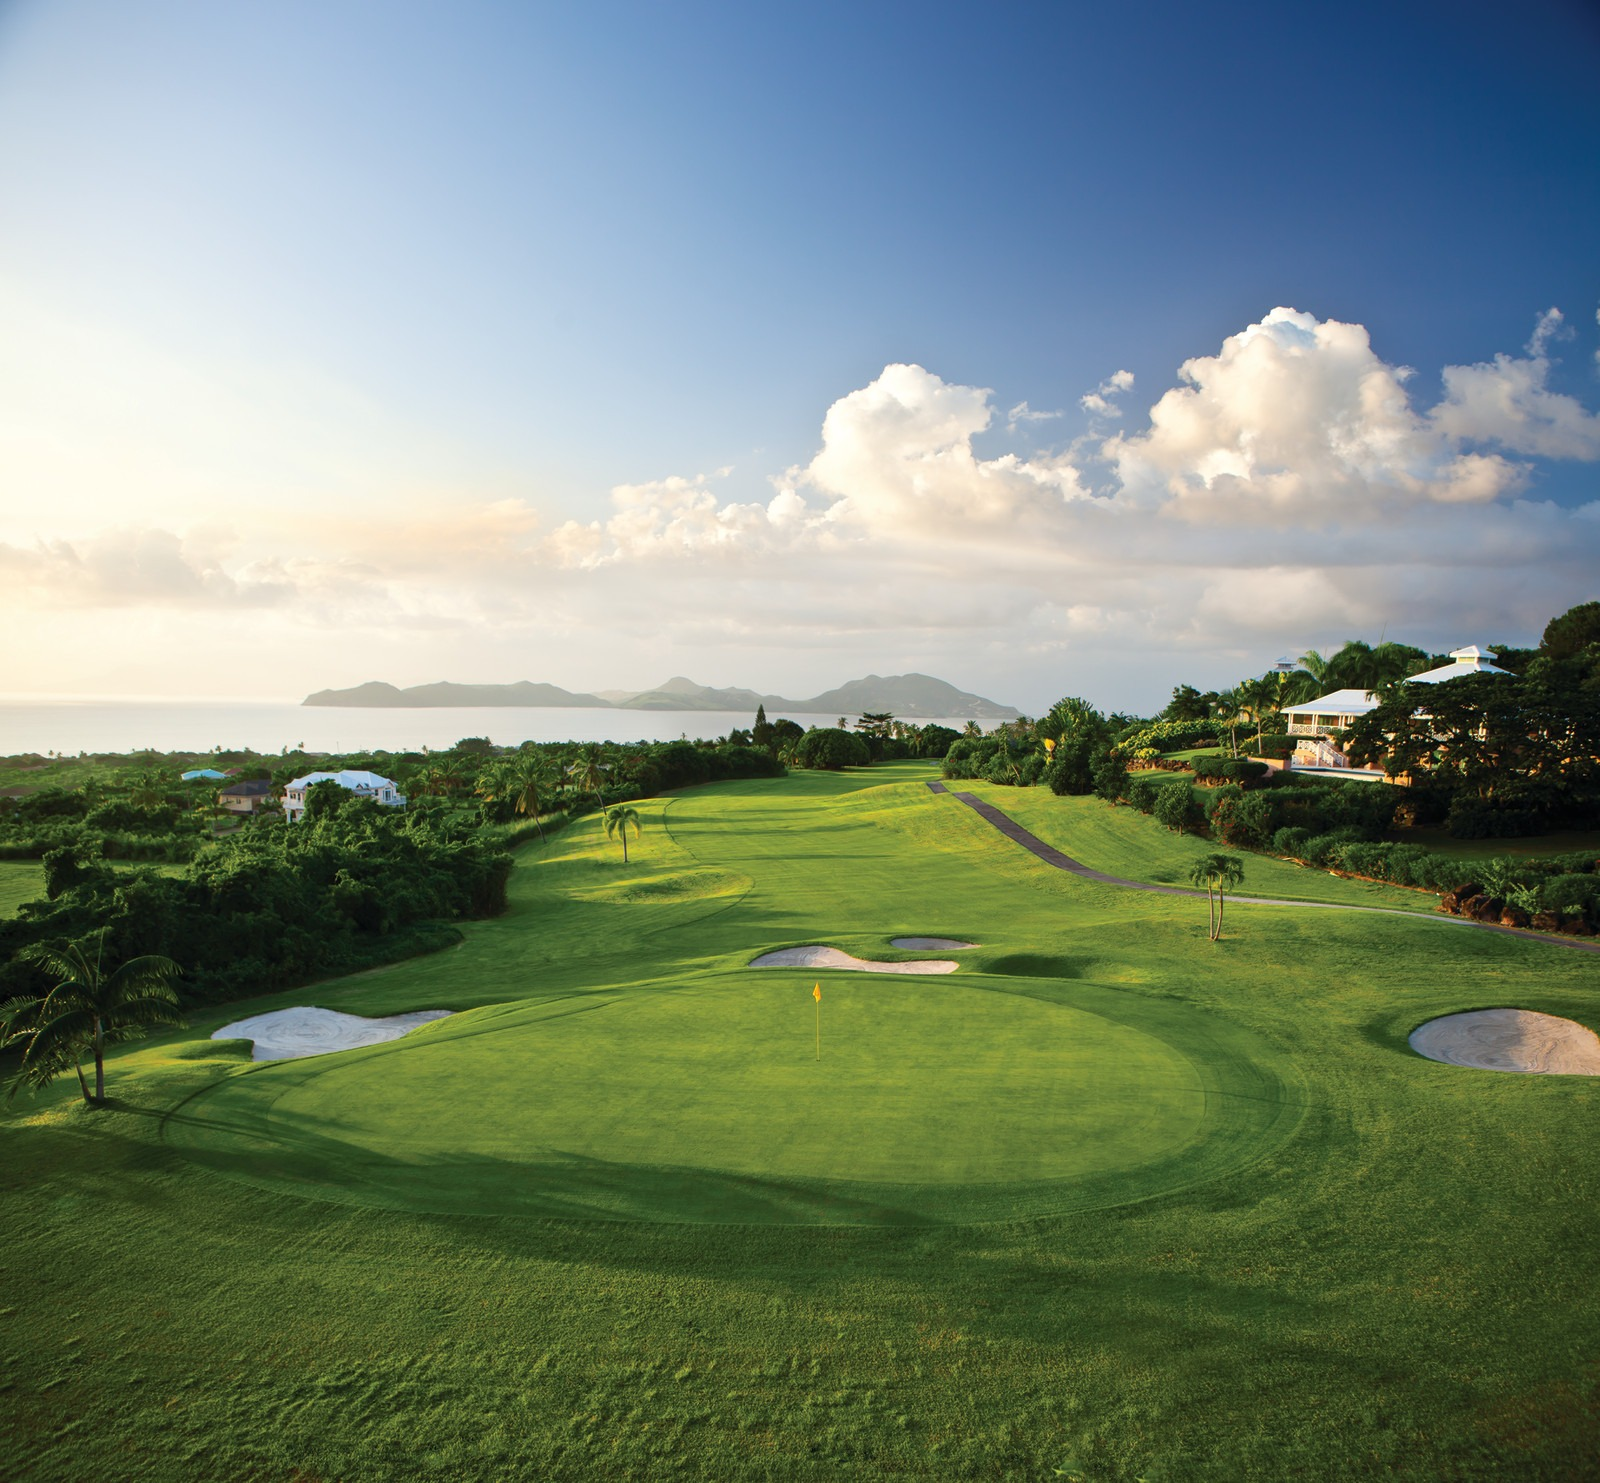 Check Out this Caribbean Golf Cruise from Atlas Ocean Voyages